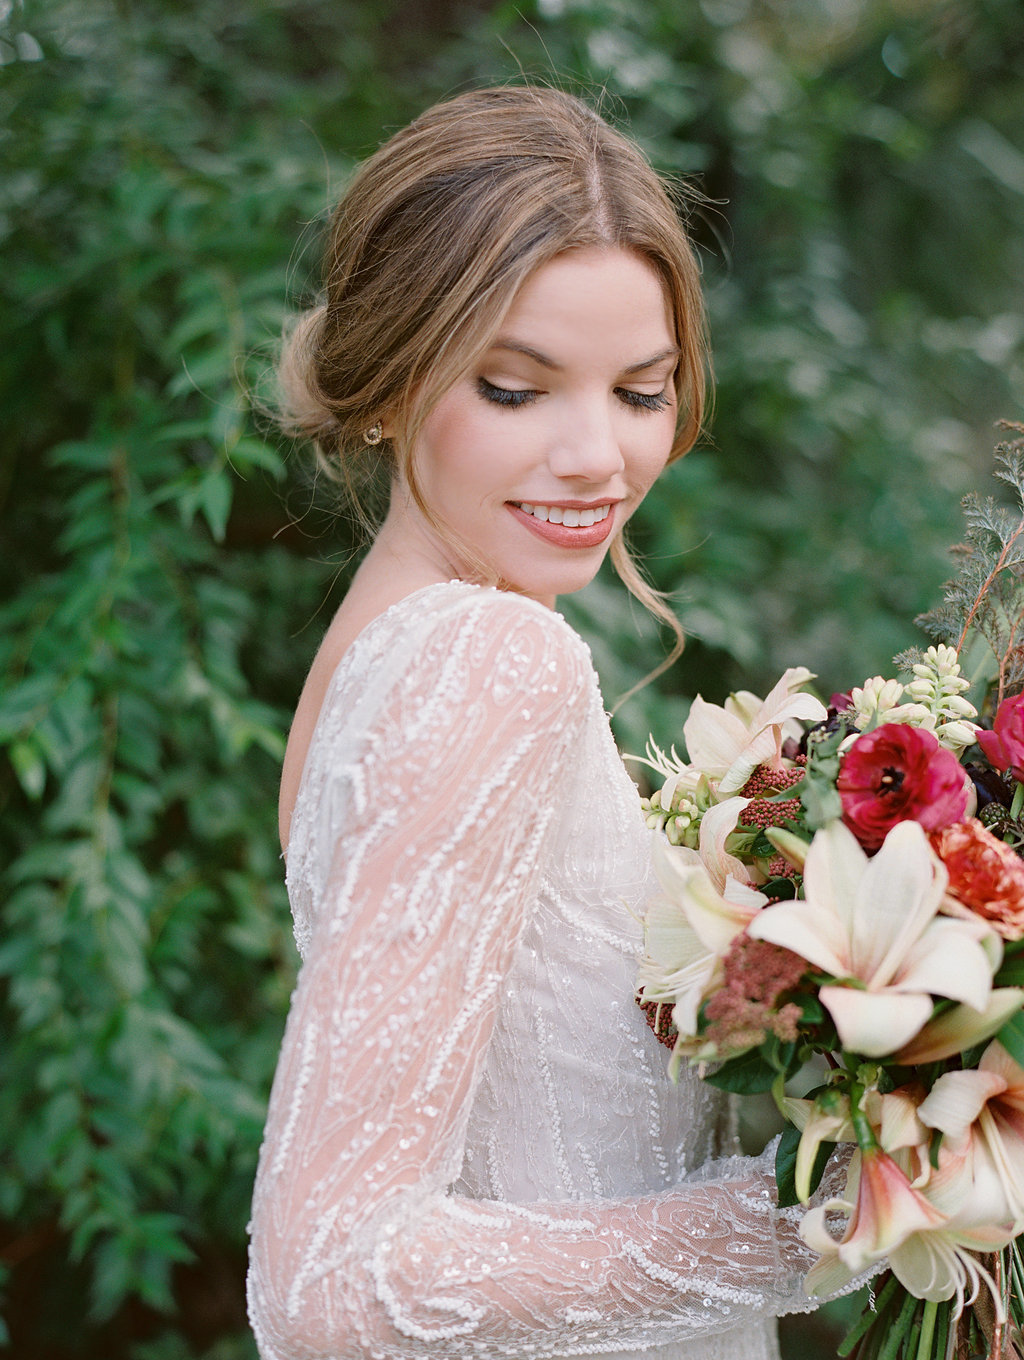 wavering-place-south-carolina-wedding-event-planner-jessica-rourke-381